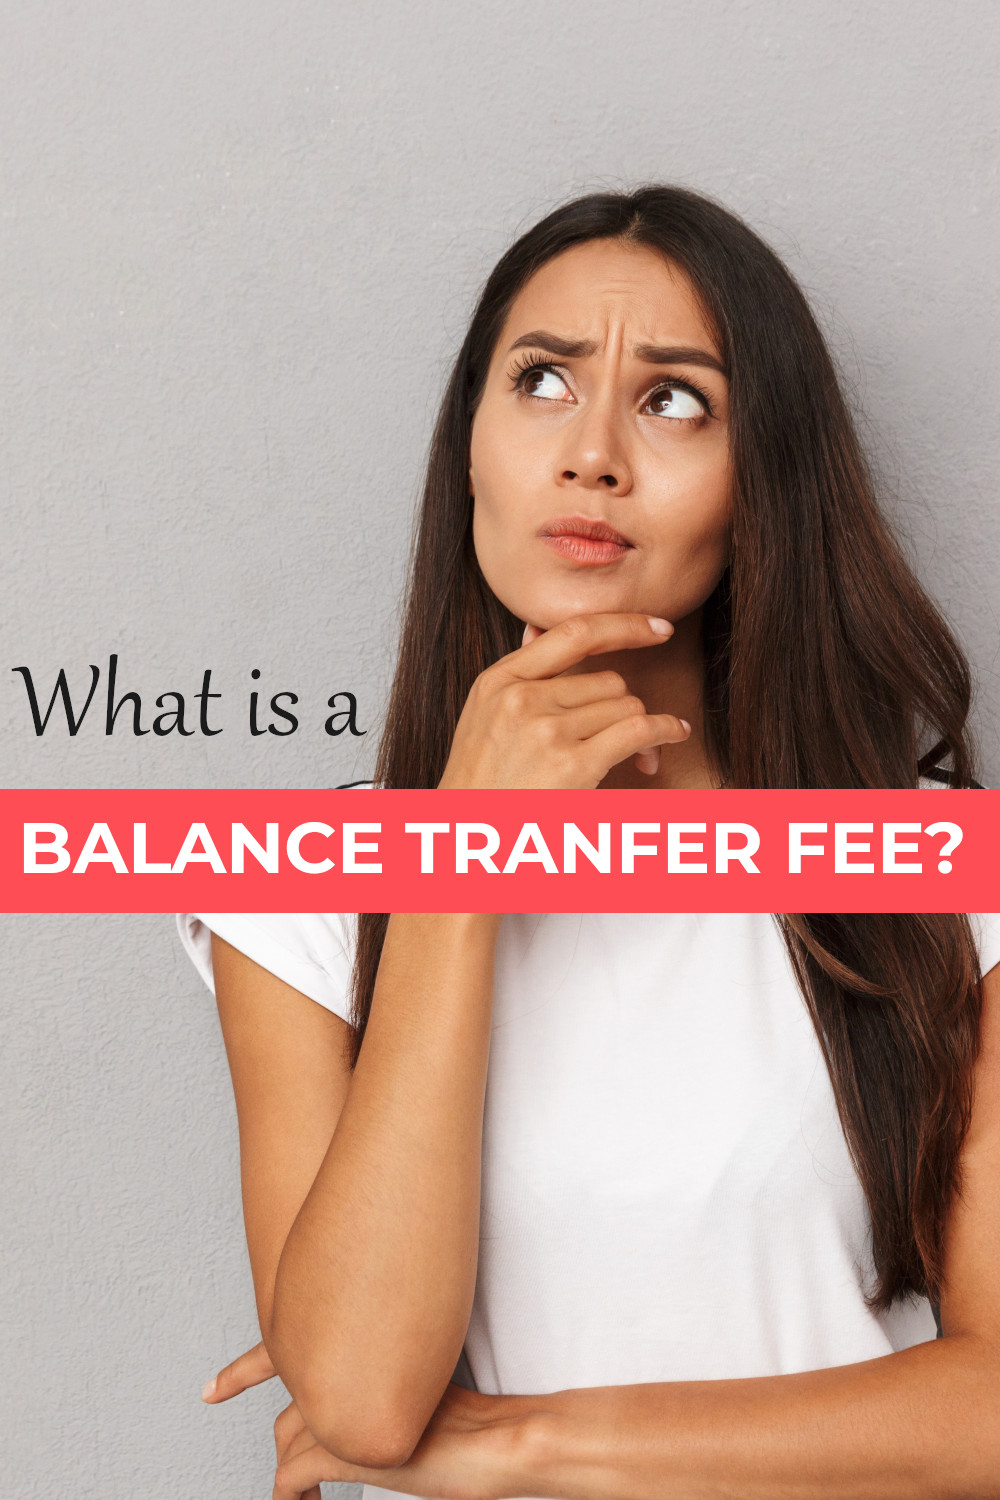 What is a balance transfer fee - the full explanation with examples.